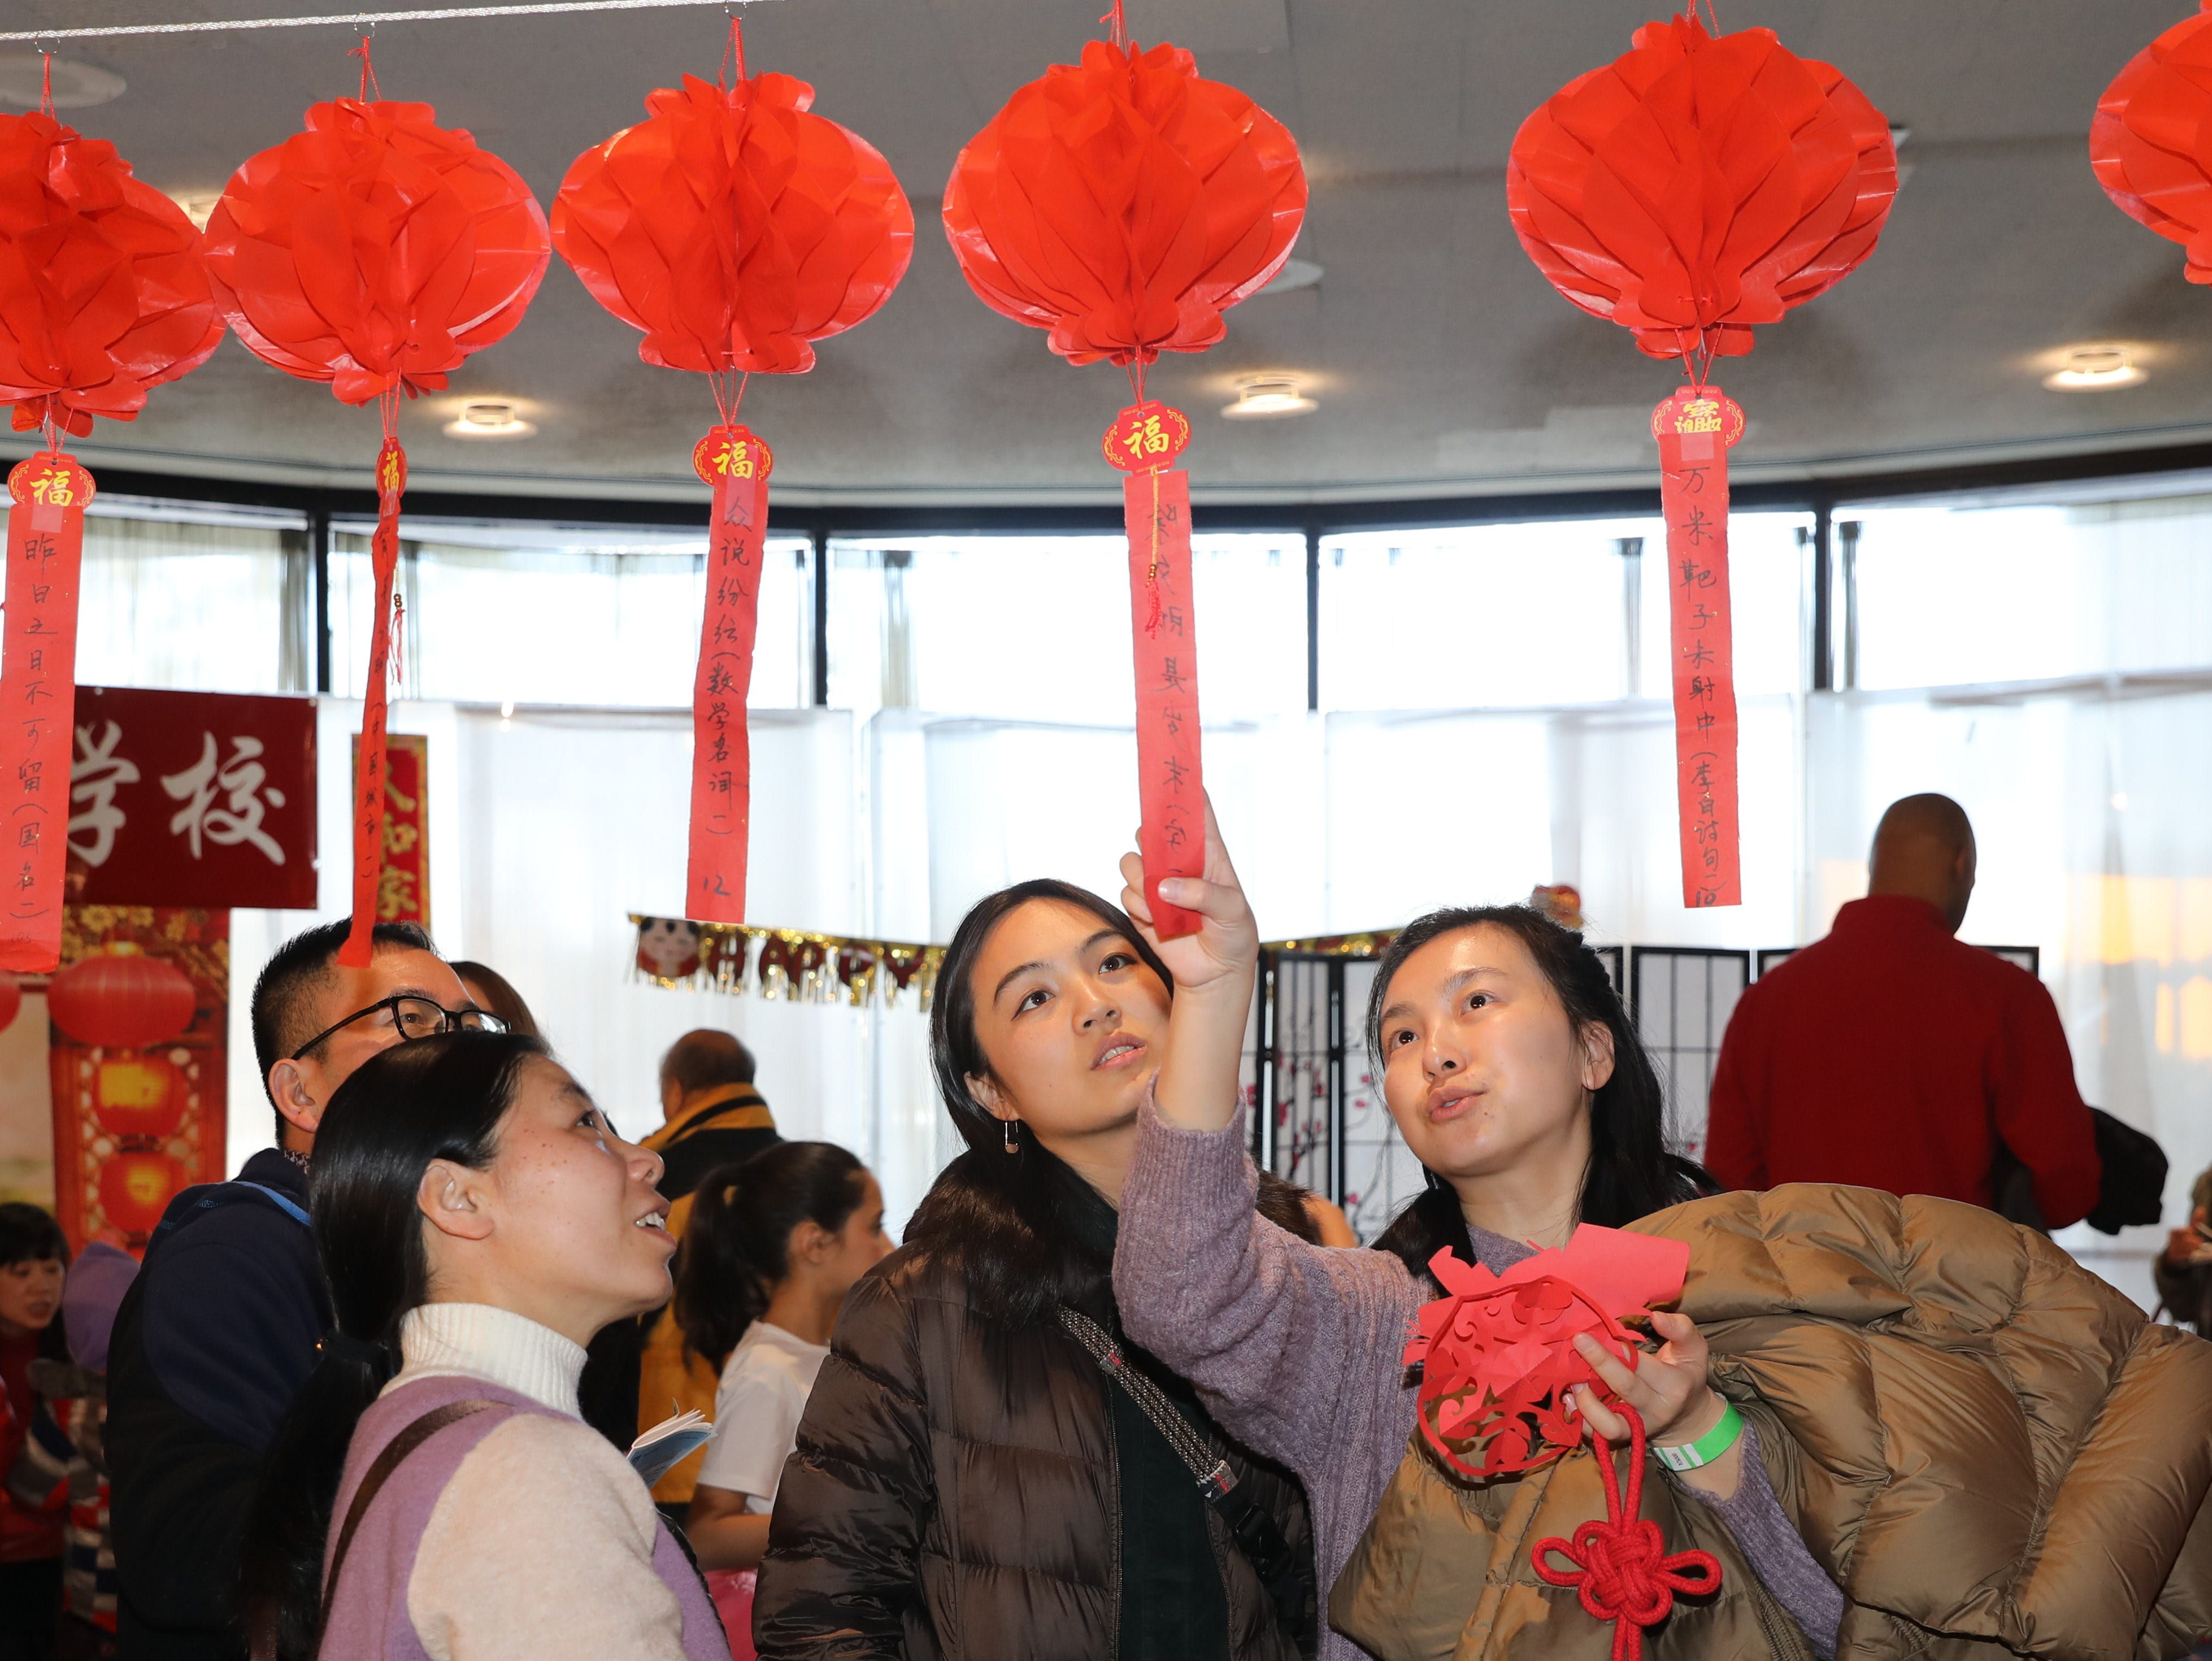 Leila Yu, center and Yang Guo, right, look at some puzzles hanging from lanterns, during the 30th Chinese New Year Festival, the Year of the Pig, sponsored by WACA (Westchester Association of Chinese Americans), at The Performing Arts Center at Purchase College SUNY, Feb. 9, 2019.